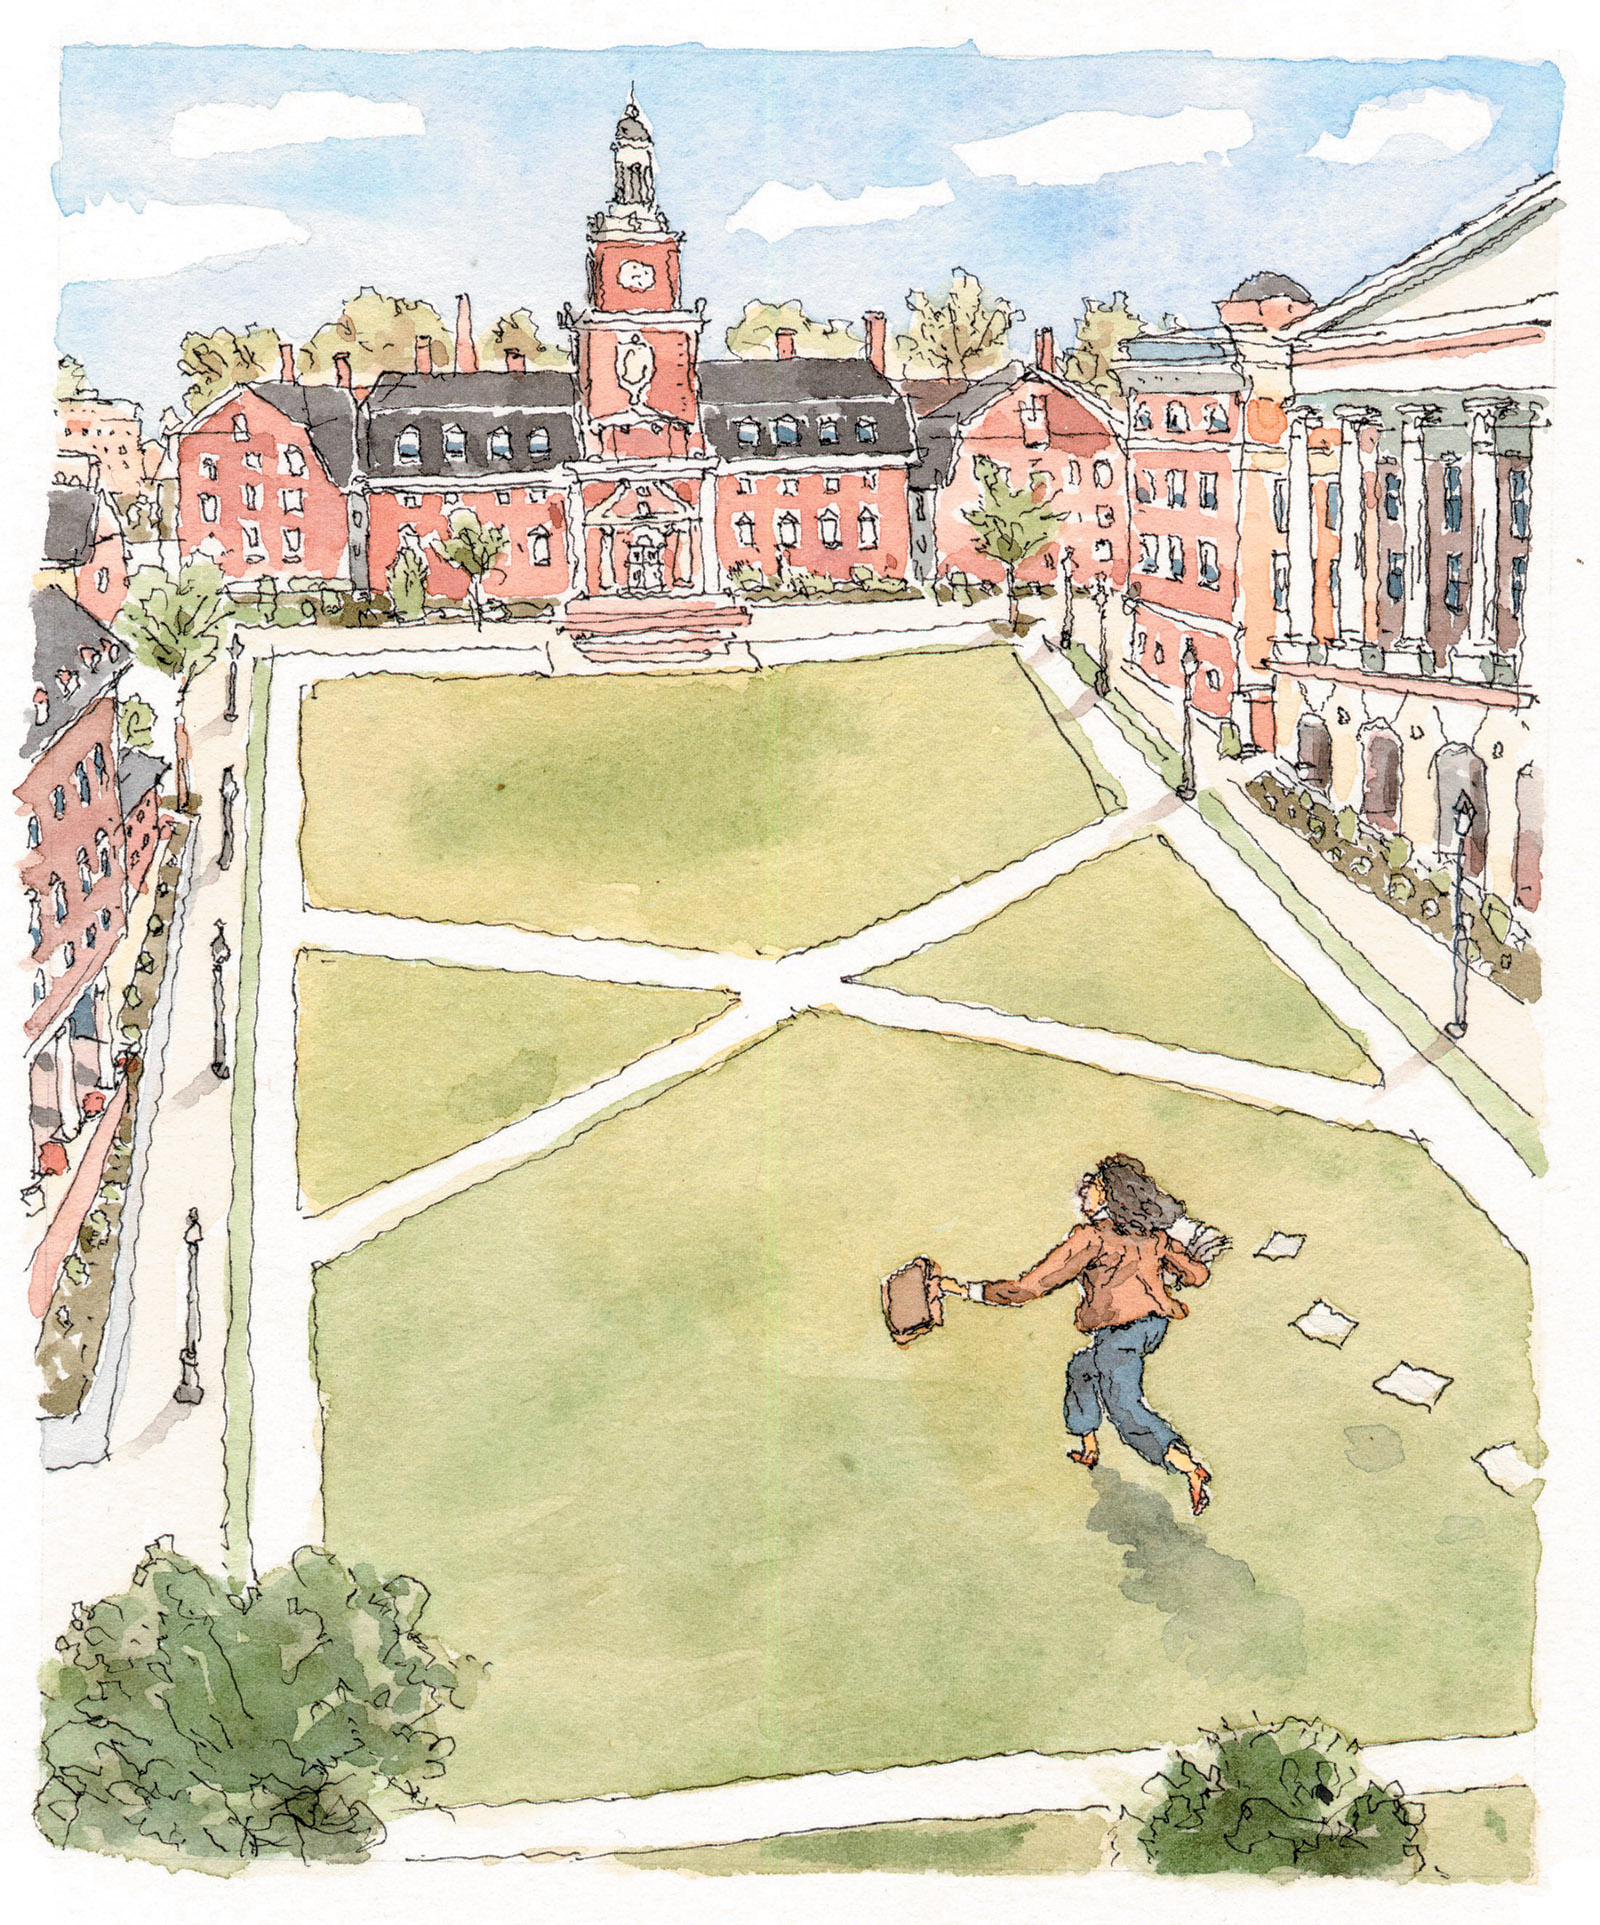 Drawing of a professor running on a college campus by John Cuneo